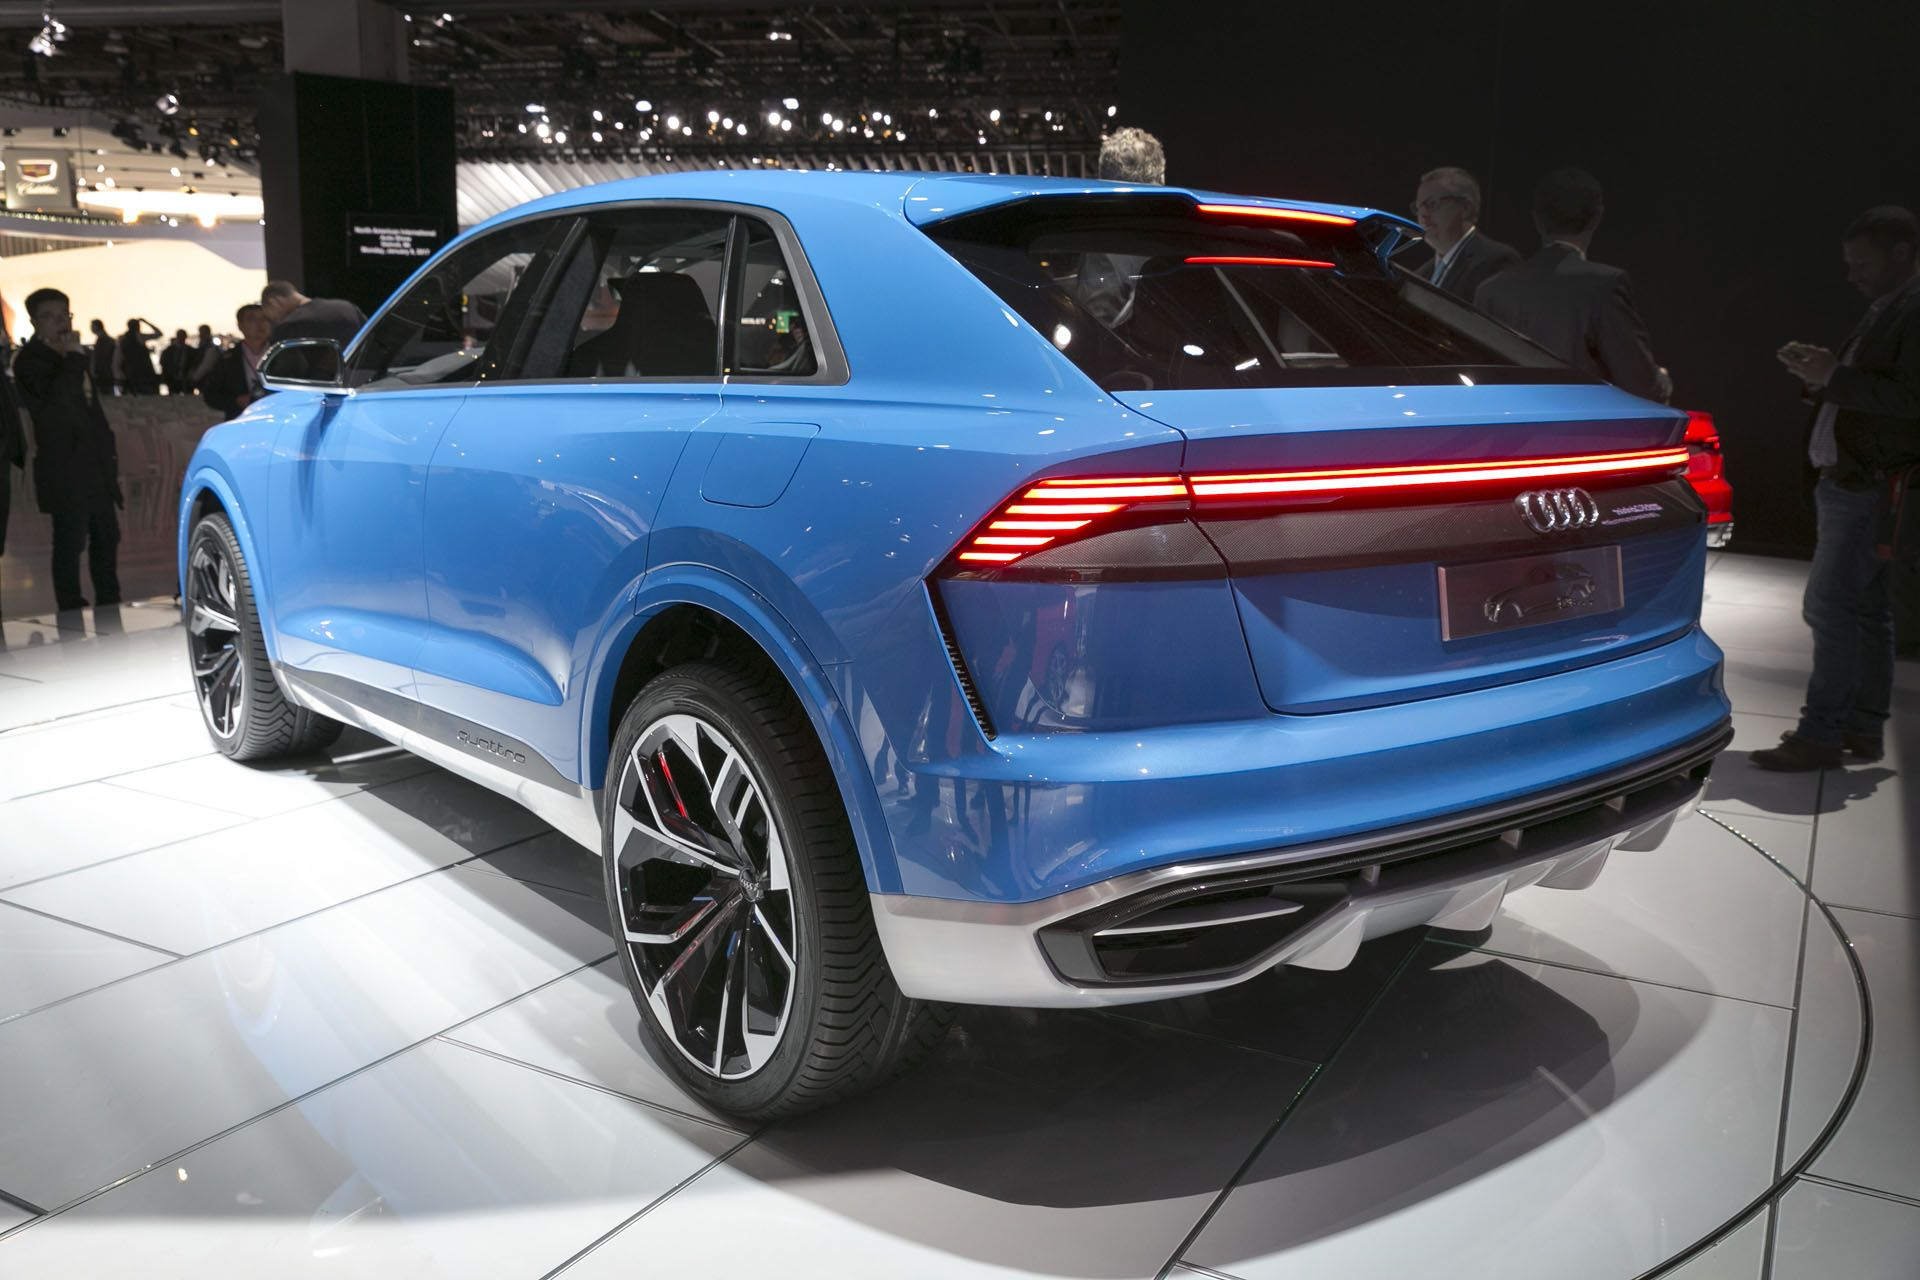 Audi Q8 Sport Suv Concept Hybrid 2018 Audi Q8 Styling One Would Tend To Think That With The Audi Q7 T Sport Suv Audi Q8 Suv Concept